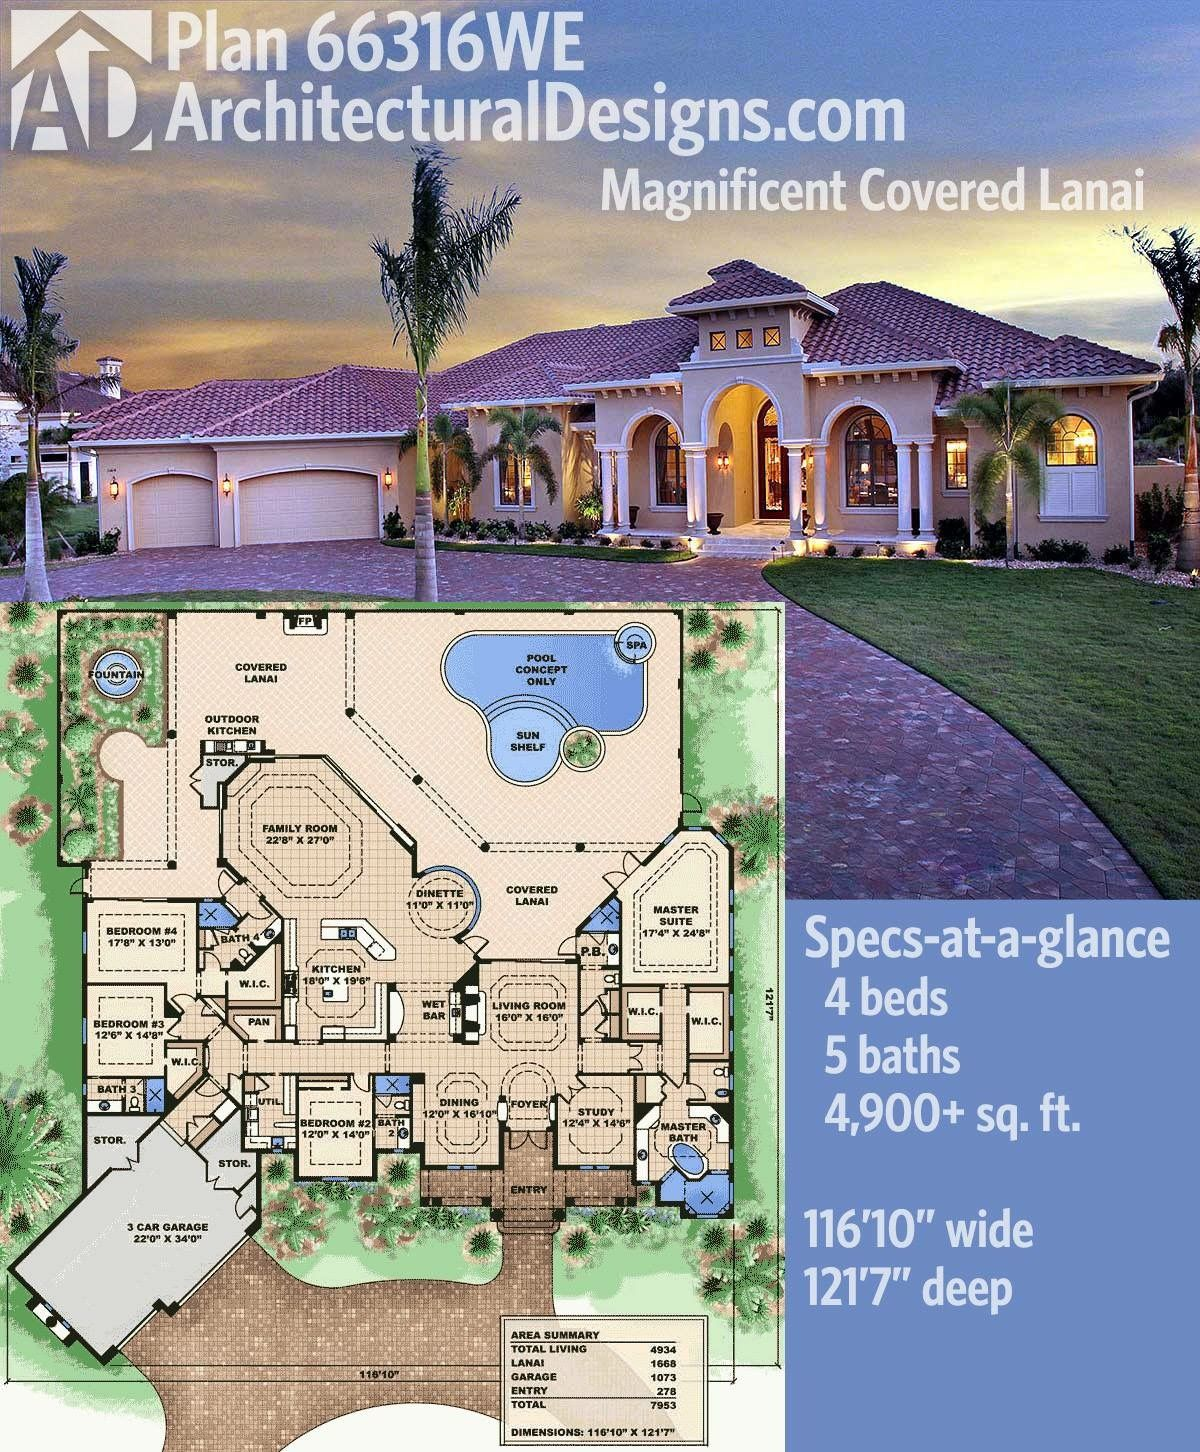 Plan 66316WE: Magnificent Covered Lanai | Pinterest | Mediterranean on middle eastern house design, middle east design, afghan house design, contemporary japanese house design, pizza house design, cooking house design, california style house design, territorial house design, jewish house design, wood house design, red door house design, french traditional house design, pasta house design, bistro house design, traditional american house design, kosher house design, belgian house design, florida luxury homes design, hispanic house design, vietnamese house design,